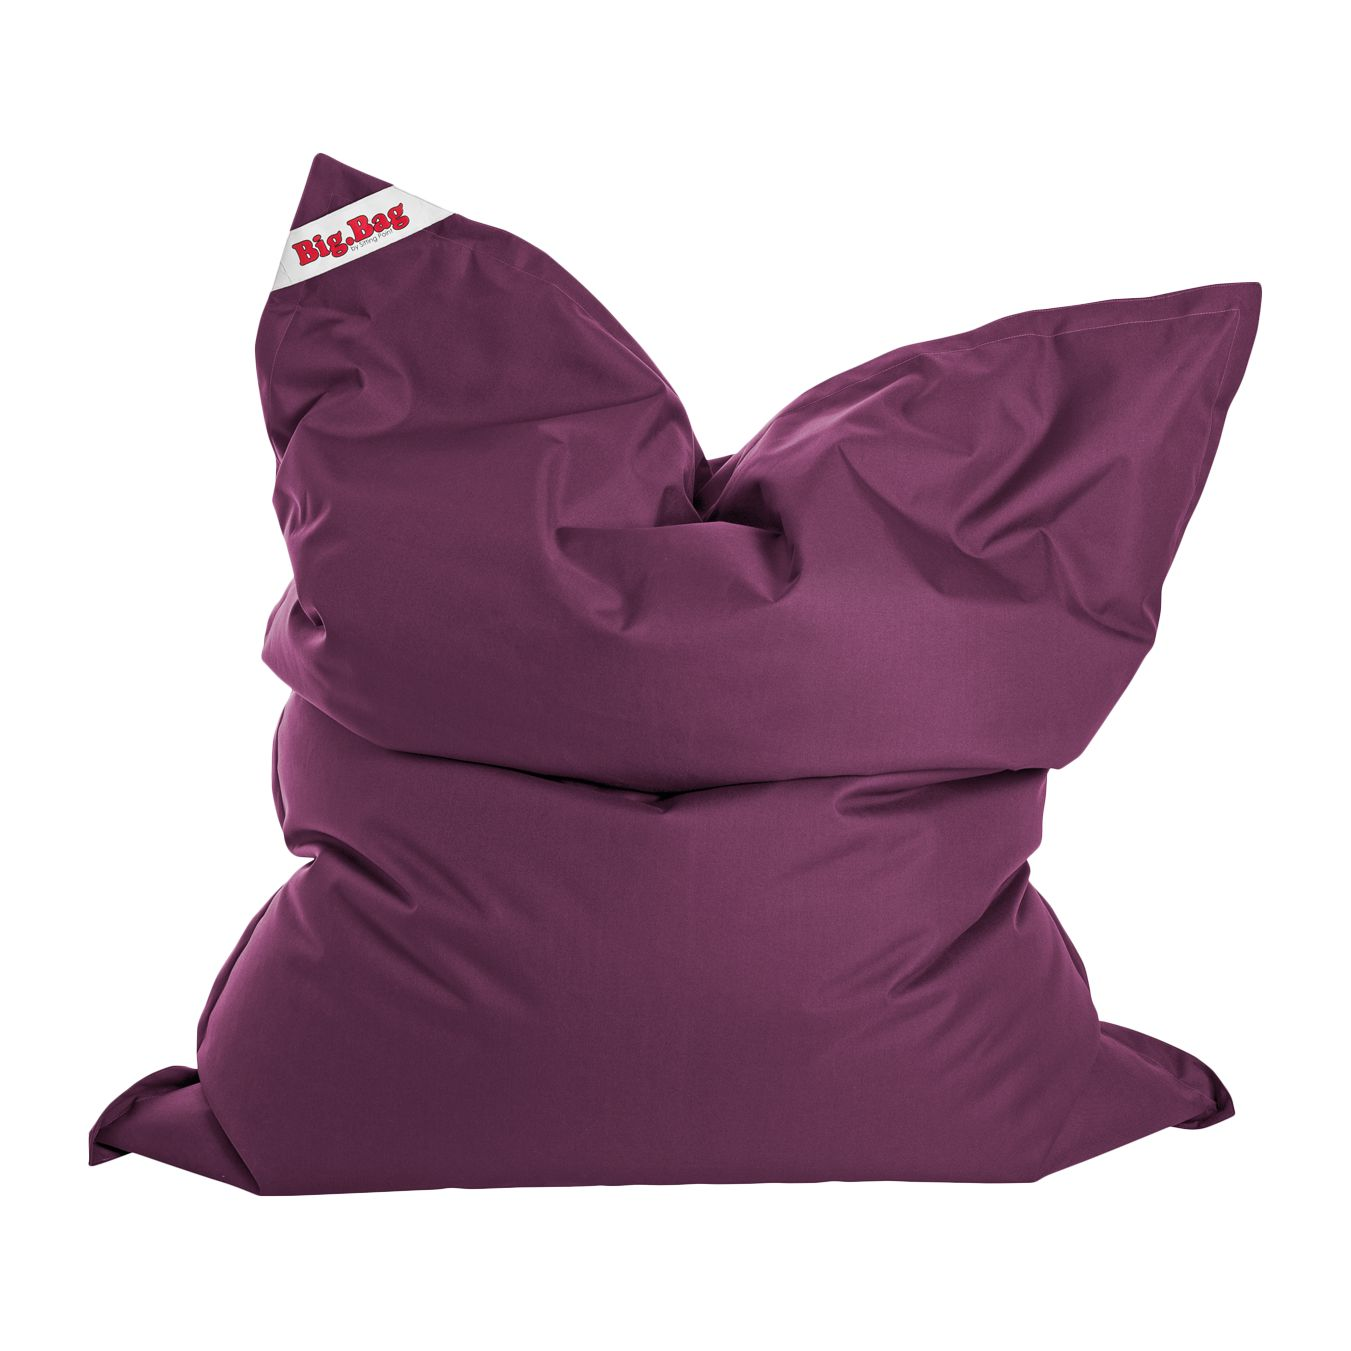 Sitzsack Big Bag Brava - Flachgewebe - Lipstick Pink, SITTING POINT